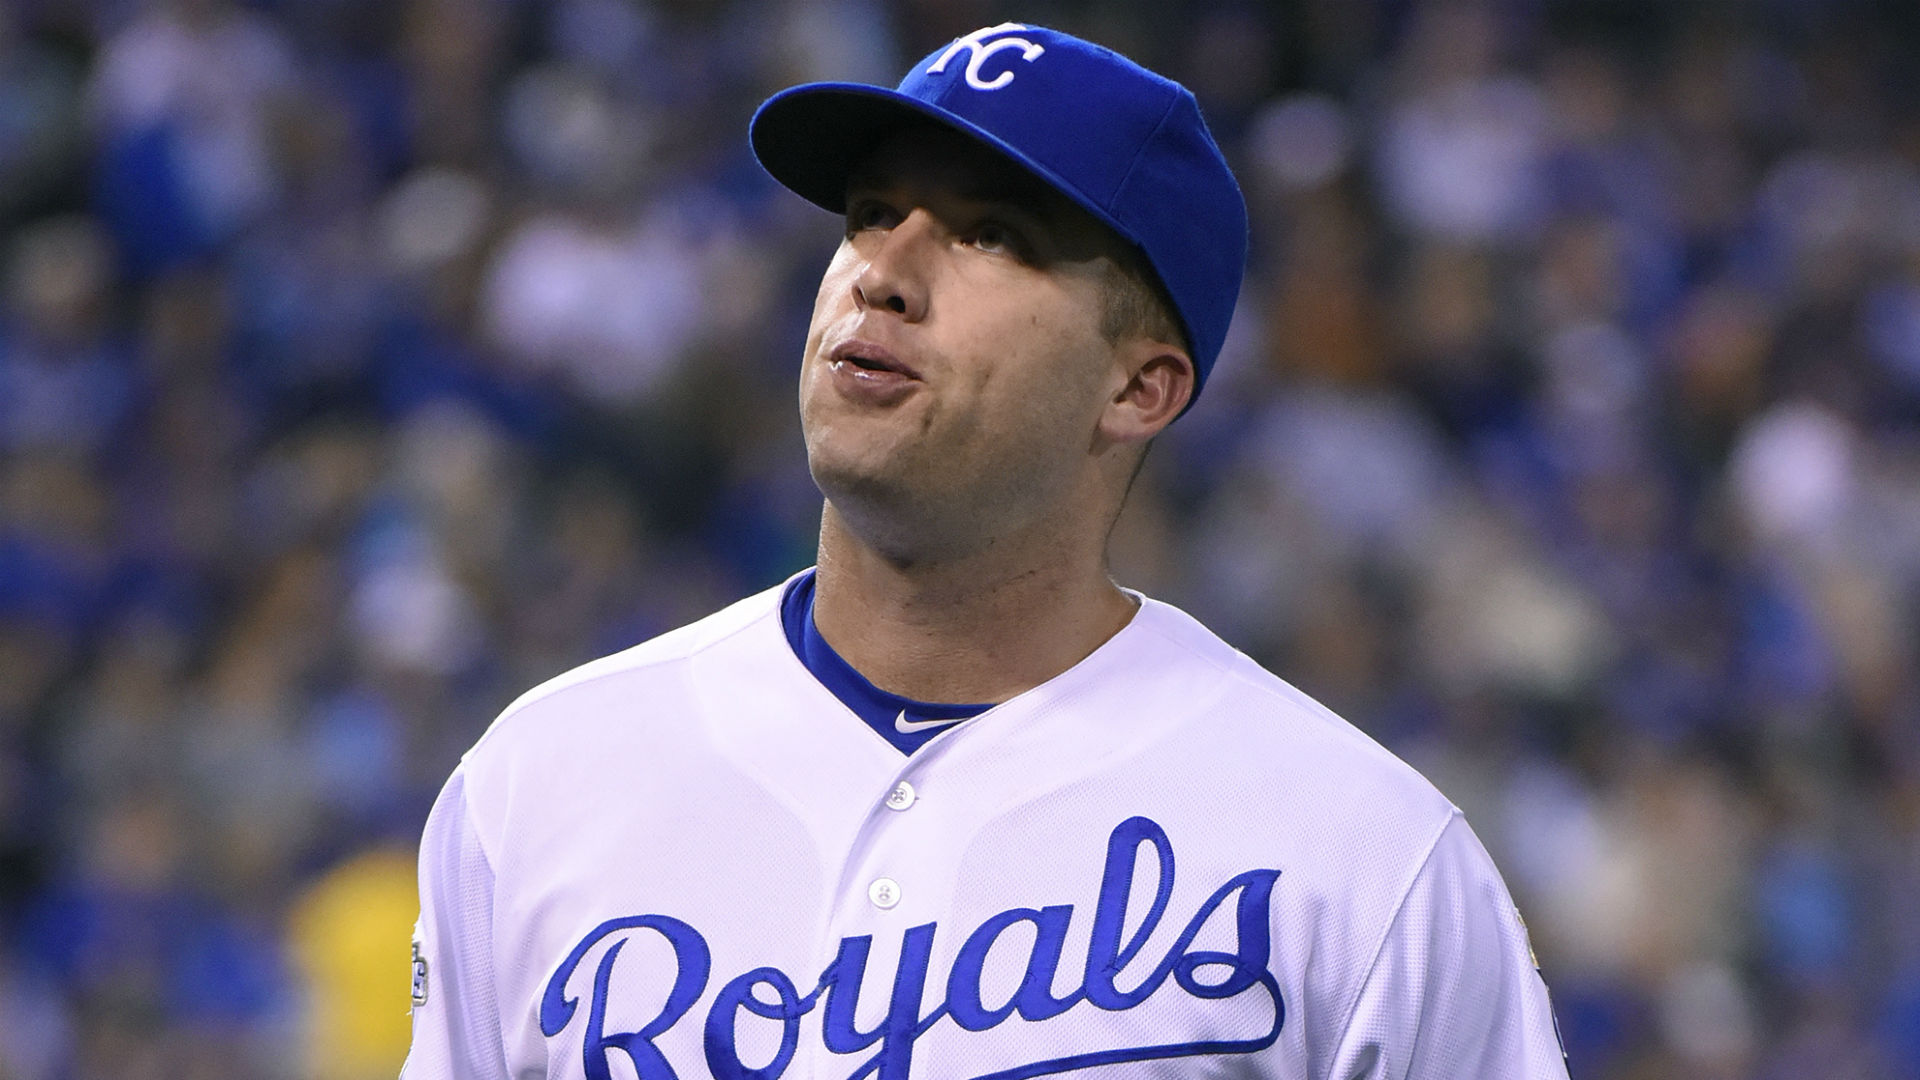 KC Royals pitcher Danny Duffy cited for DUI